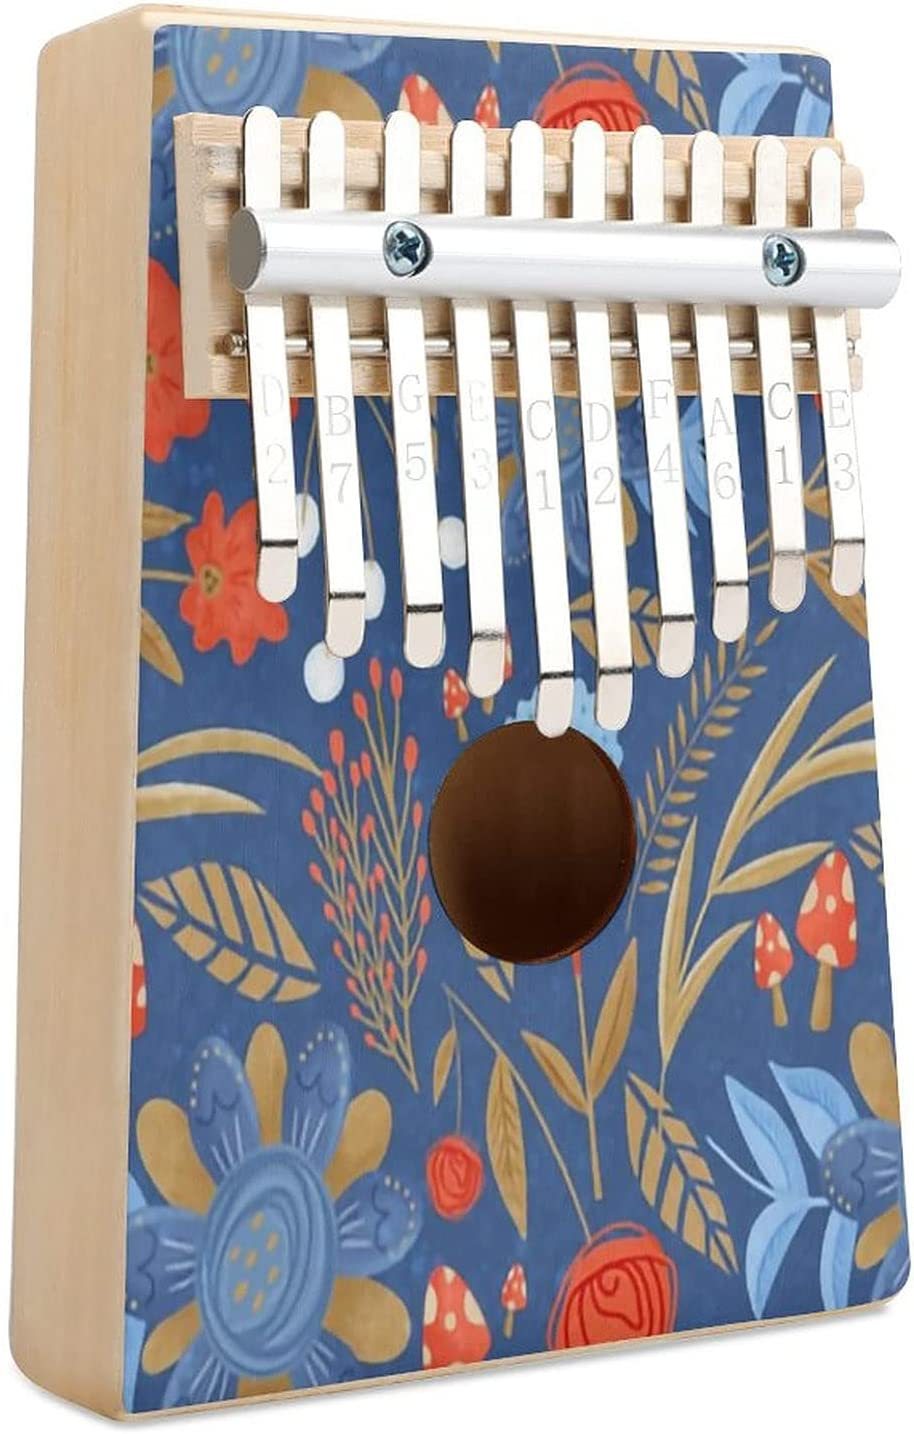 Alice Adventure 1 Kalimba Thumb Finger Manufacturer regenerated product High material 10 Piano Key Musica